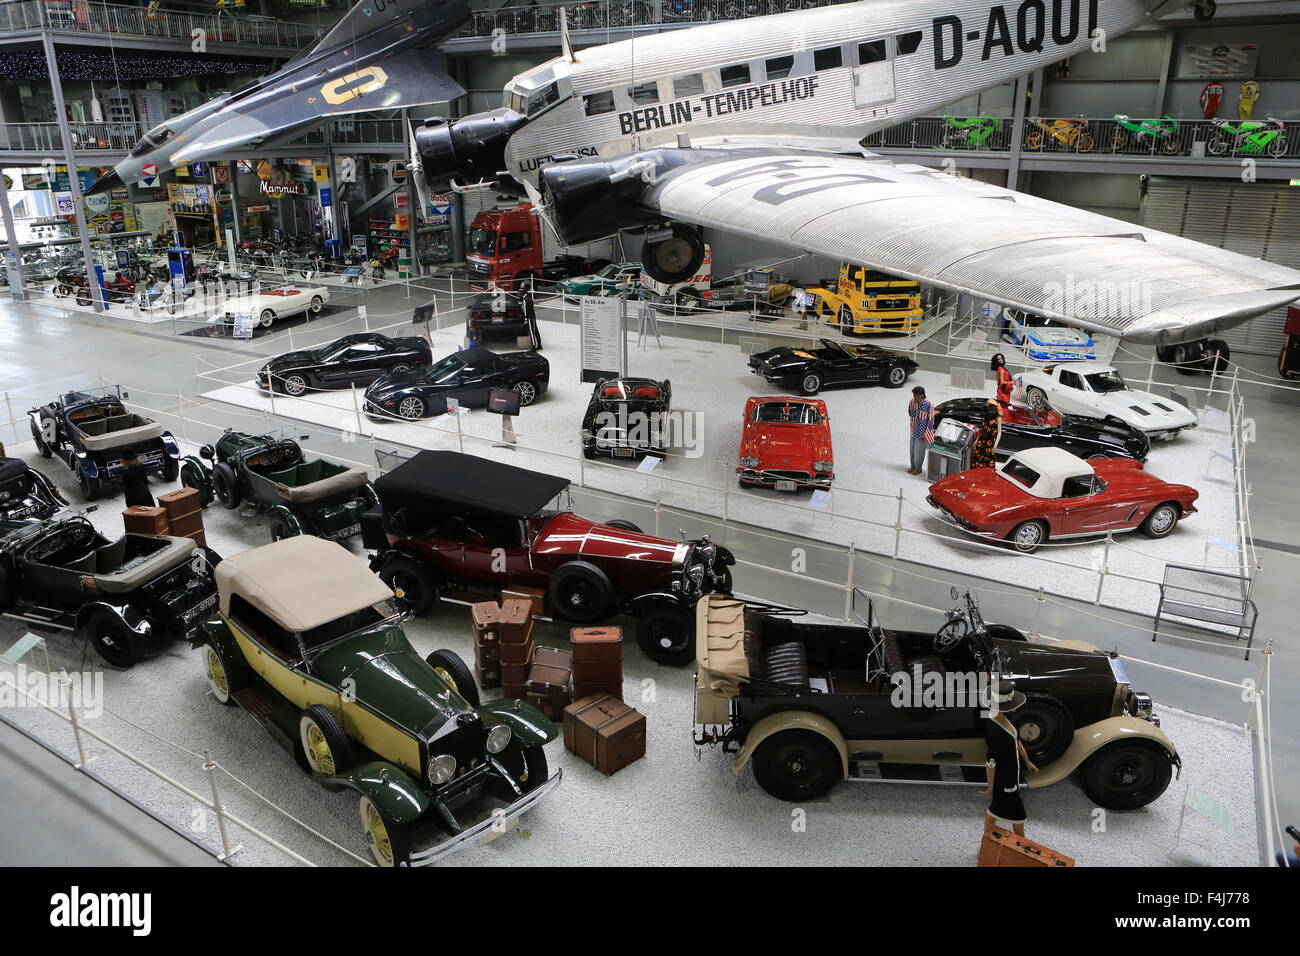 Berlin-Tempelhof, Exhibition Apollo and Beyond, The Technik Museum Speyer, Rhineland-Palatinate, Germany, Europe - Stock Image